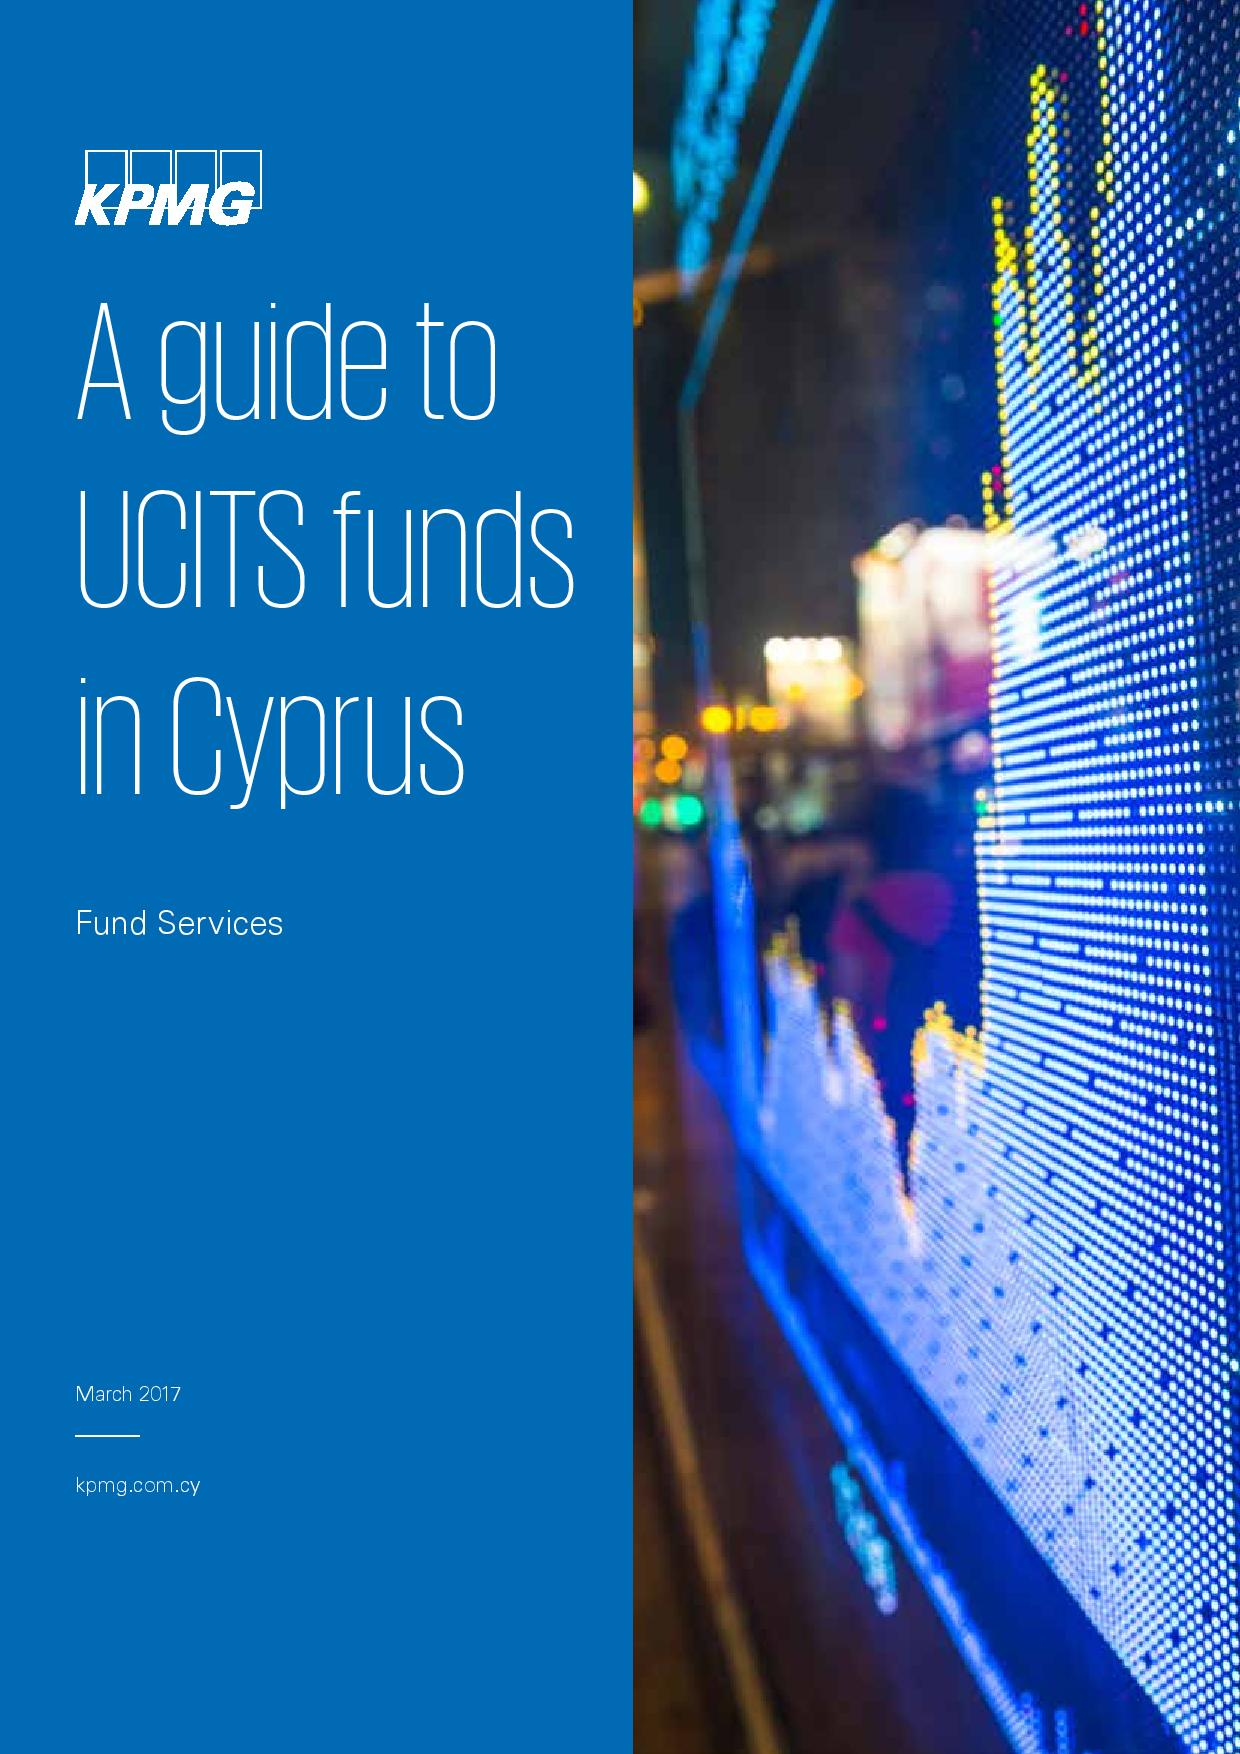 KPMG: A guide to UCITS funds in Cyprus